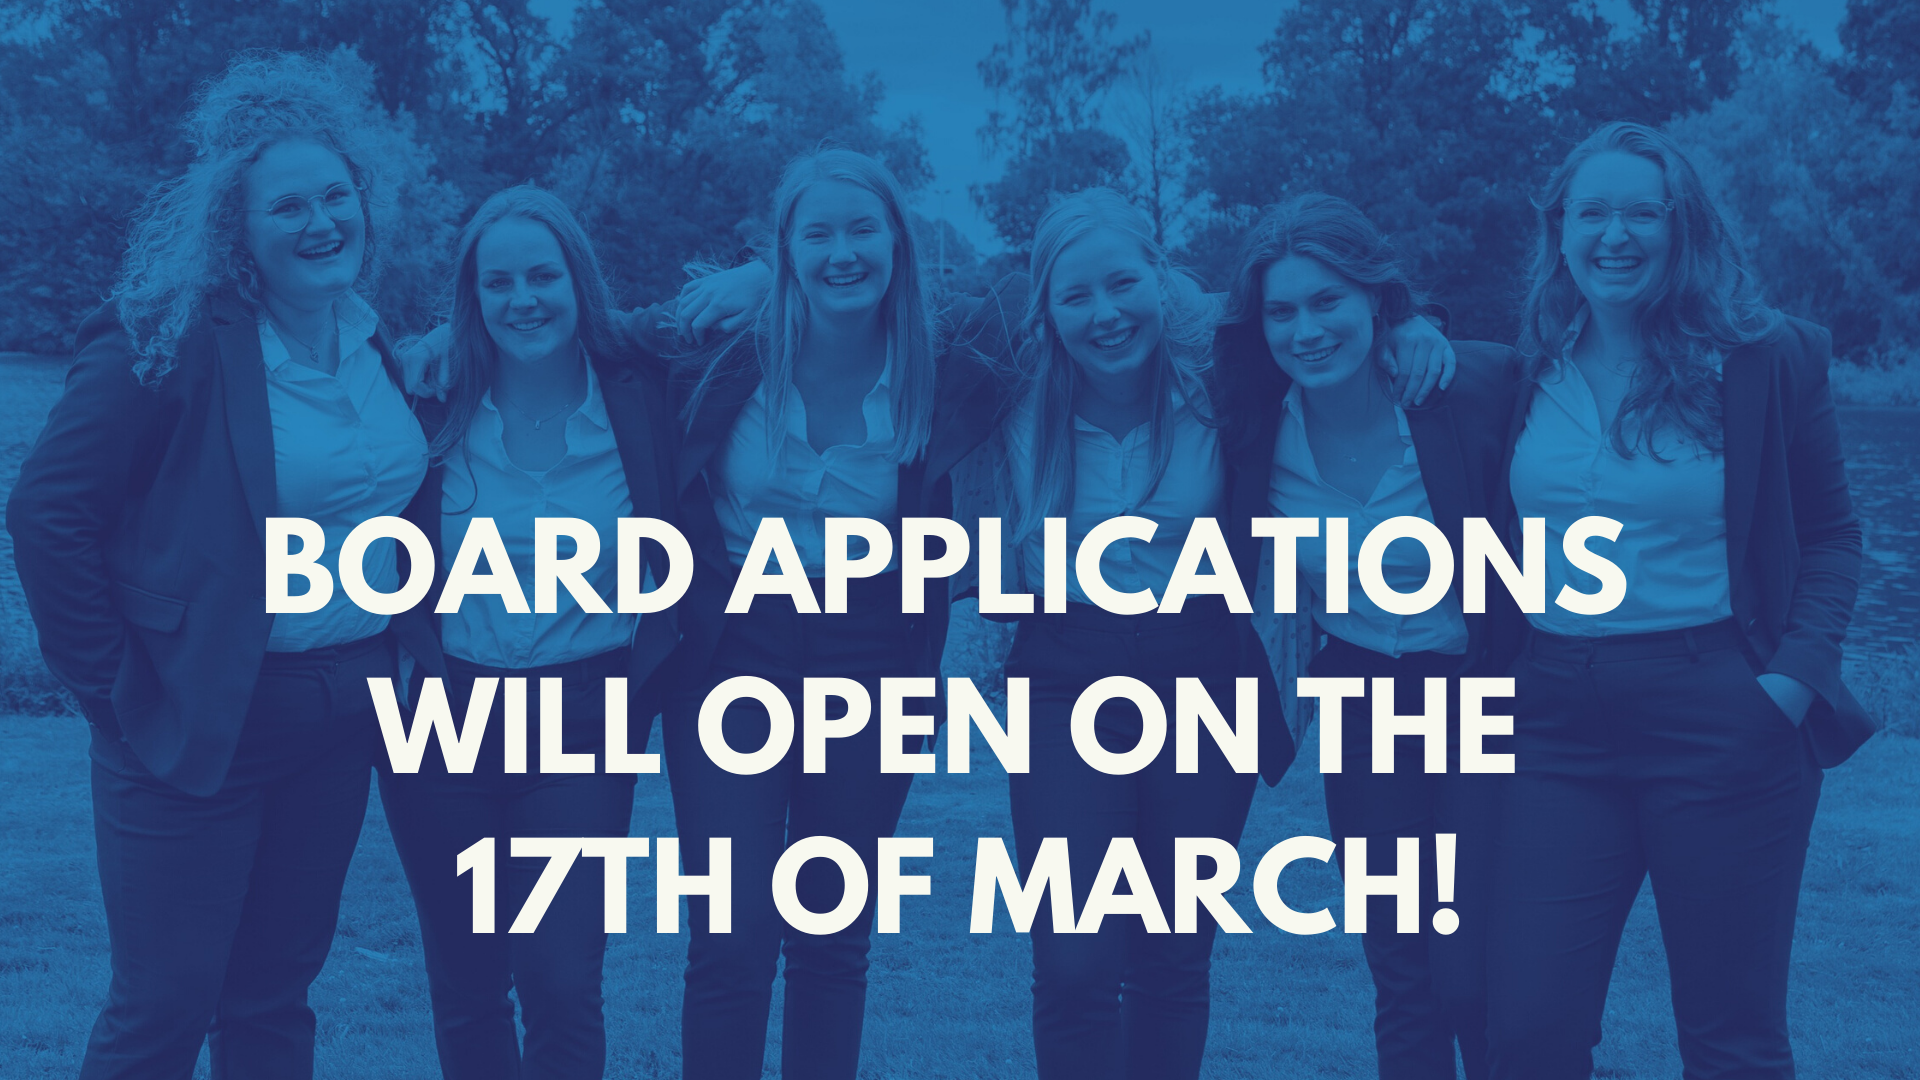 Board applications opening soon!